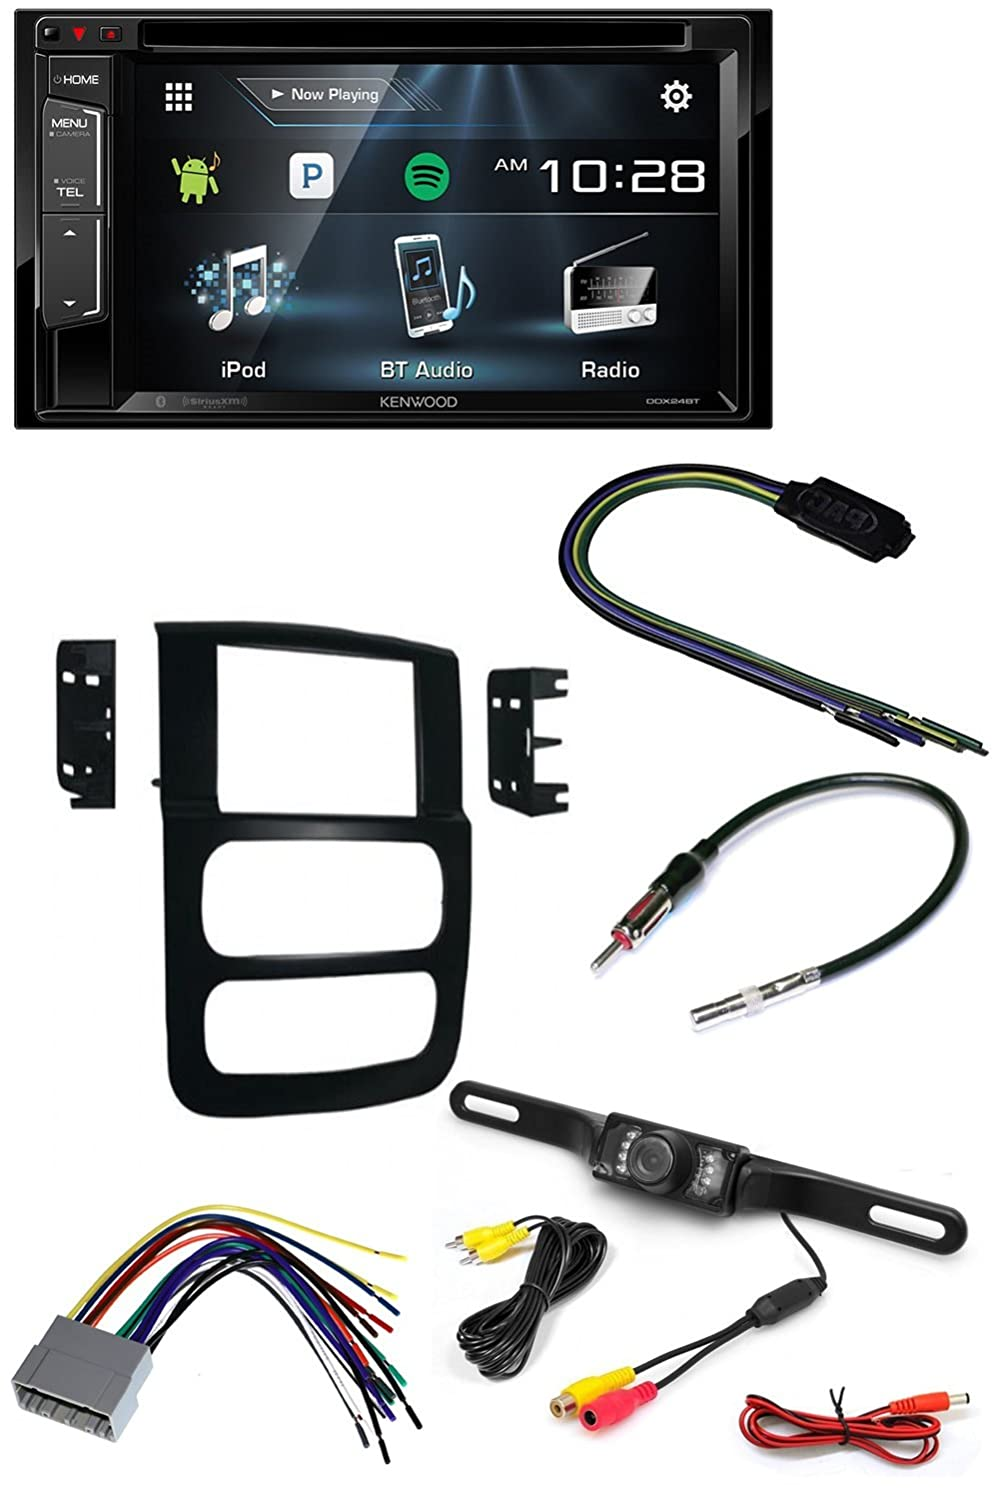 KENWOOD CAR CD STEREO RECEIVER DASH INSTALL MOUNTING KIT WIRE HARNESS AND  RADIO ANTENNA ADAPTER FOR